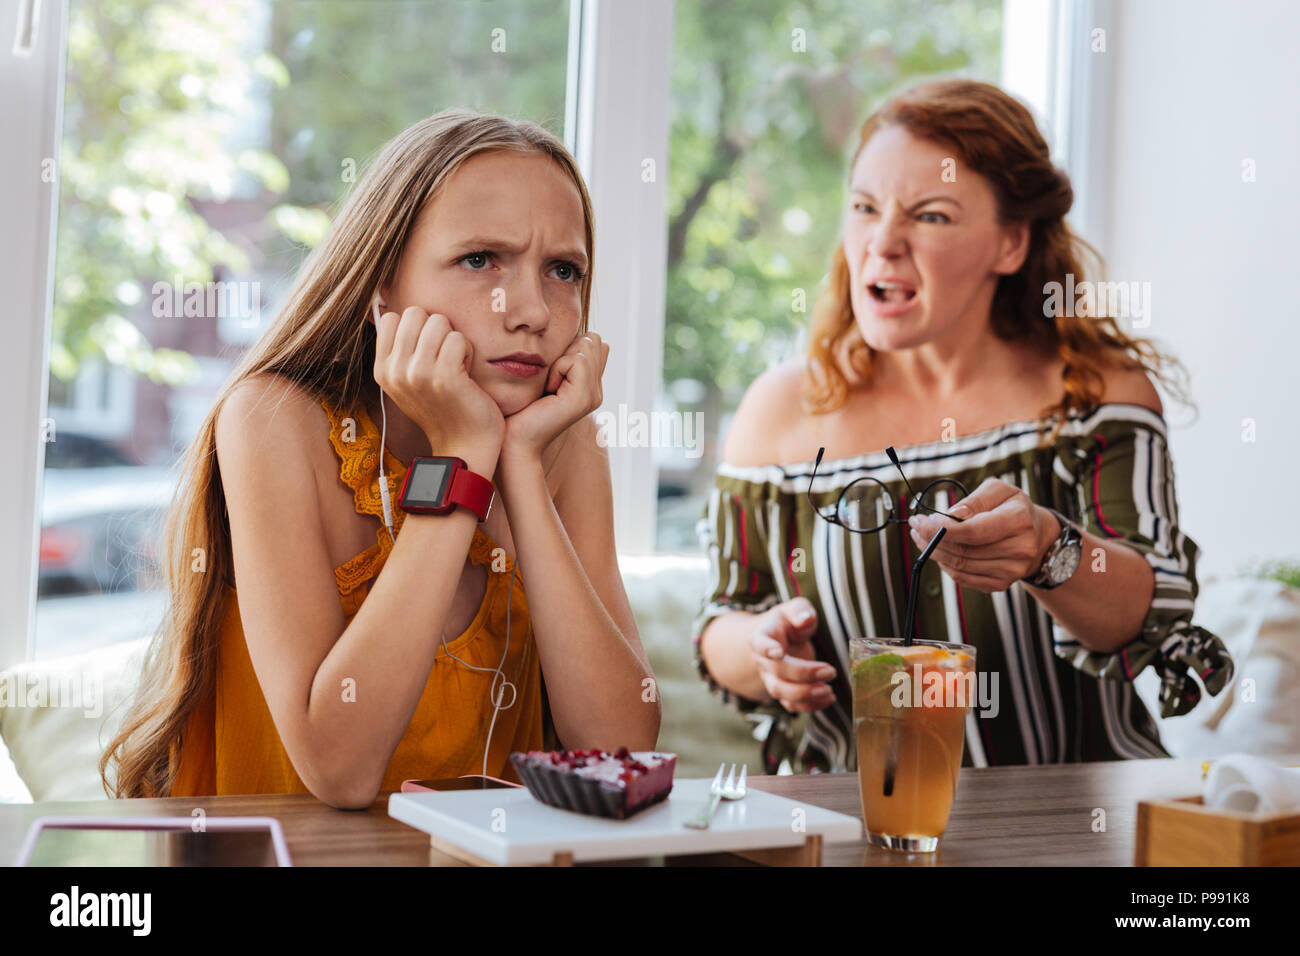 Blue-eyed schoolgirl feeling angry arguing with mother - Stock Image